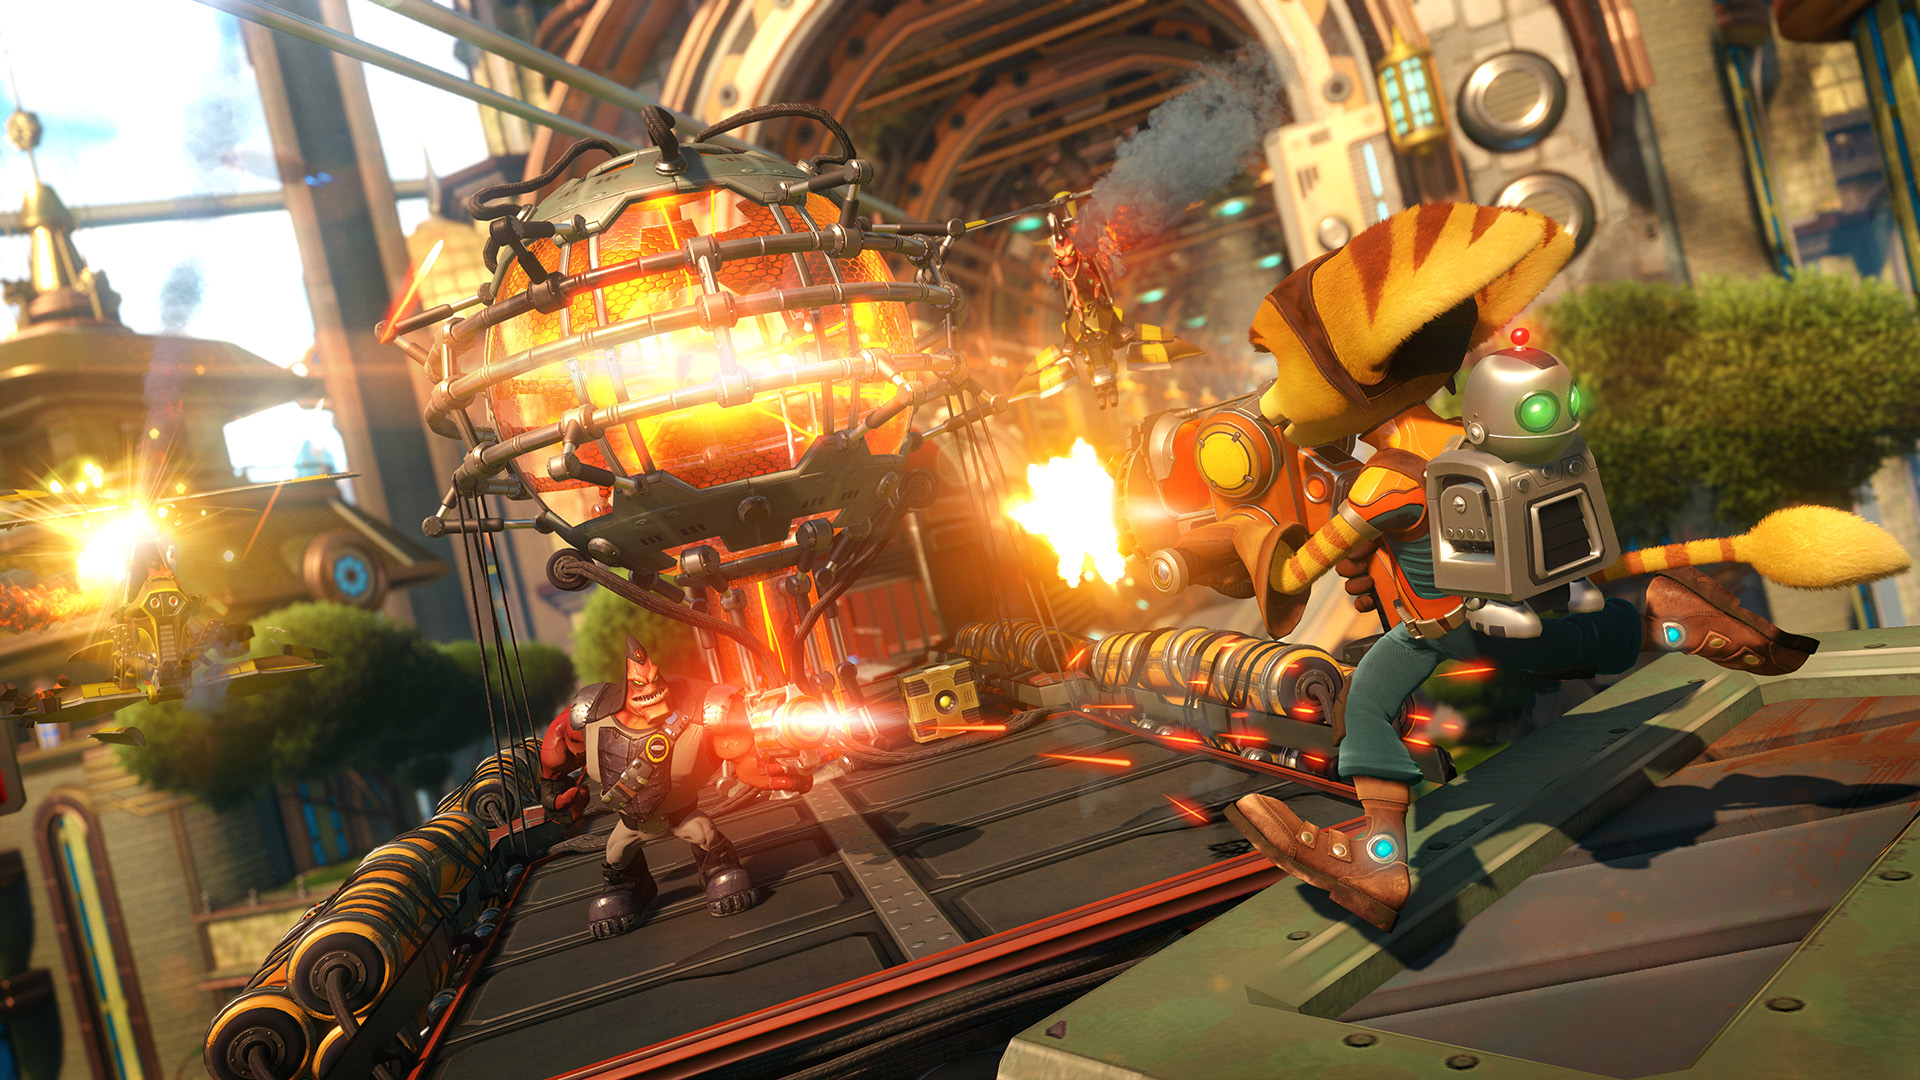 RCPS4 1 met train Ratchet & Clank Is A Love Letter To A Treasured Franchise